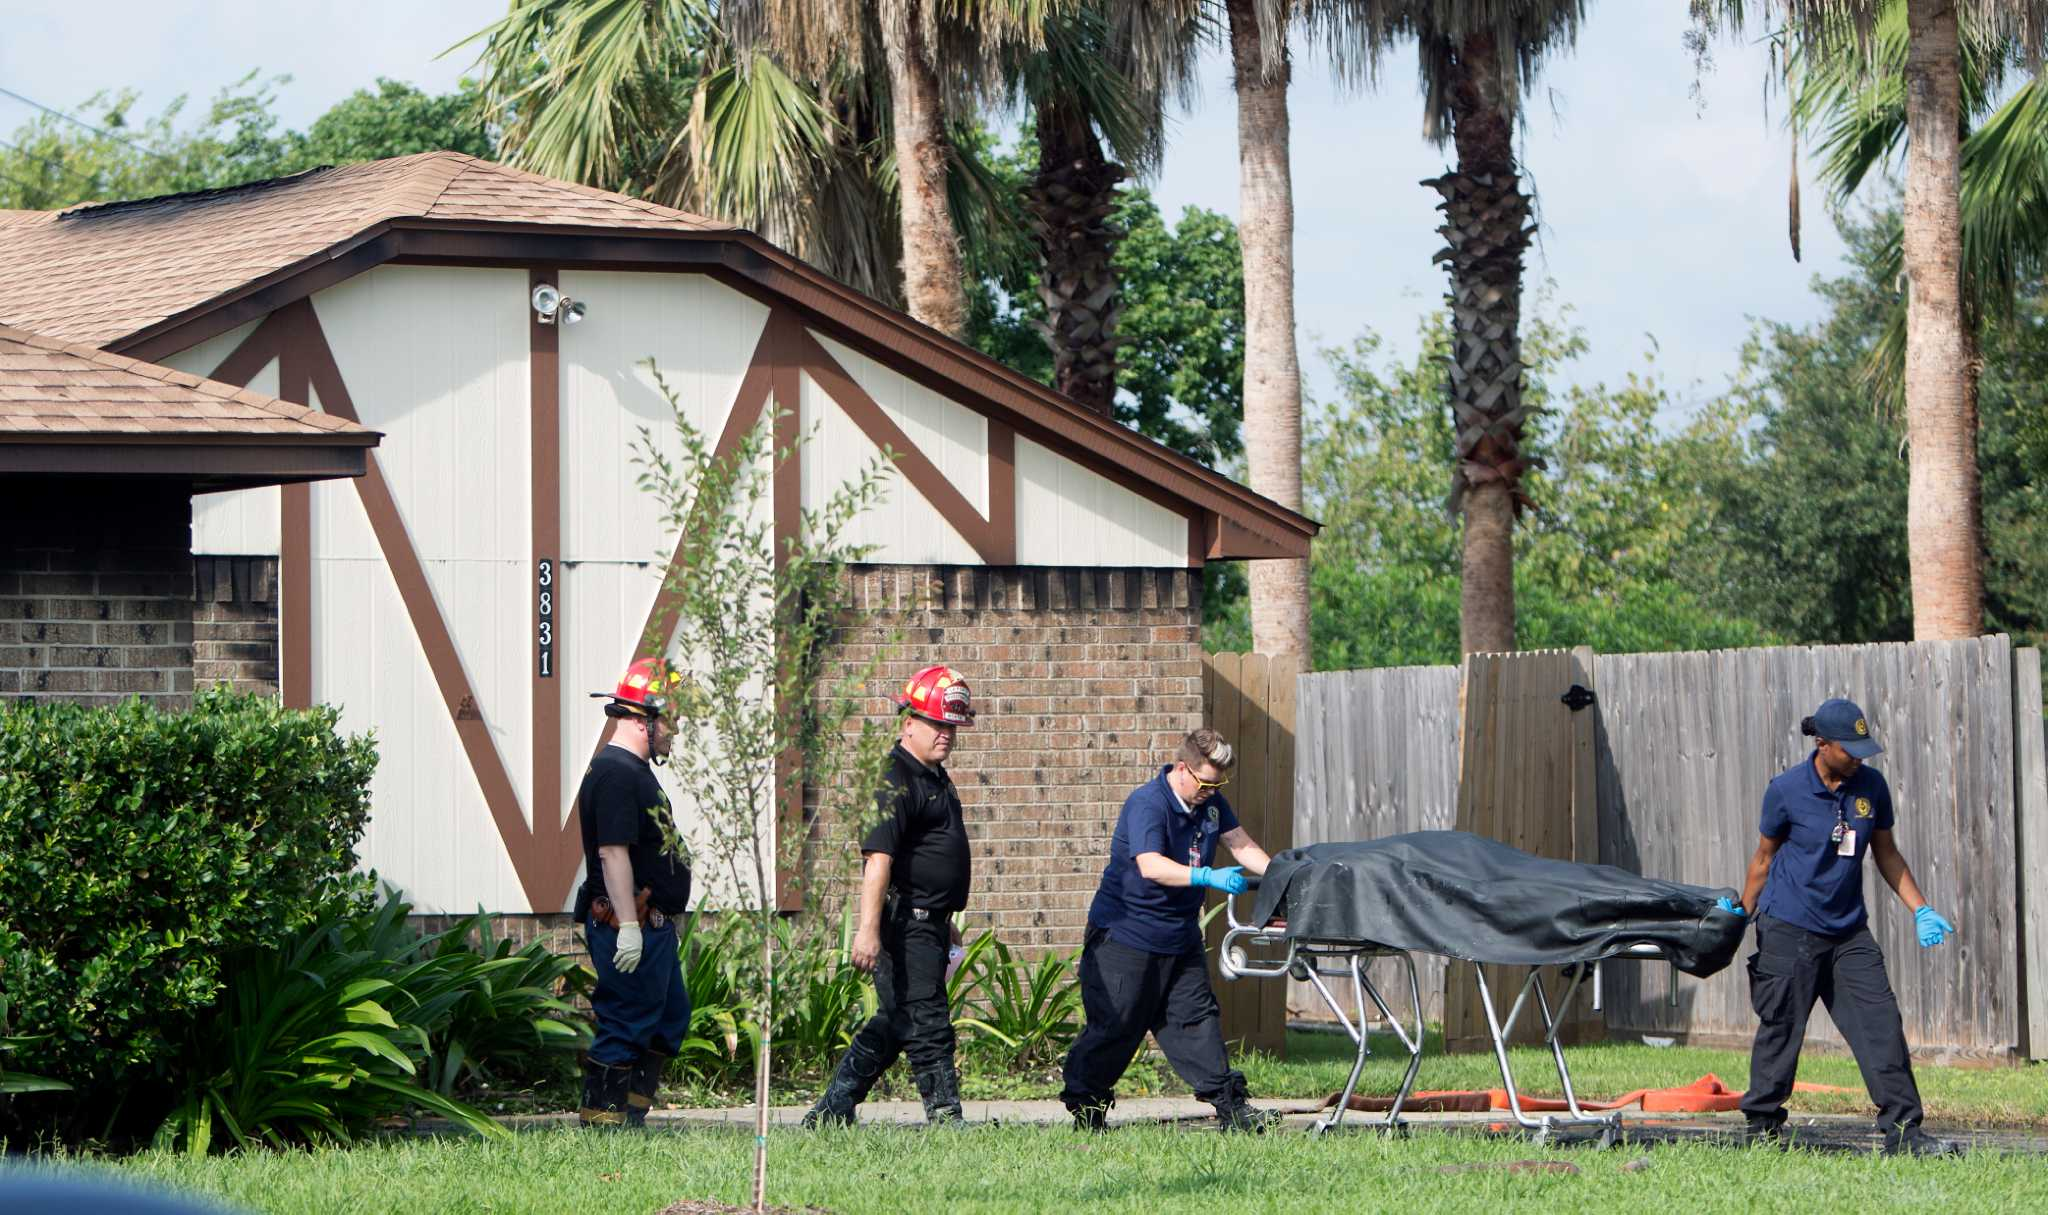 Dad and son 5 die in la porte house fire houston chronicle for La porte tx city hall